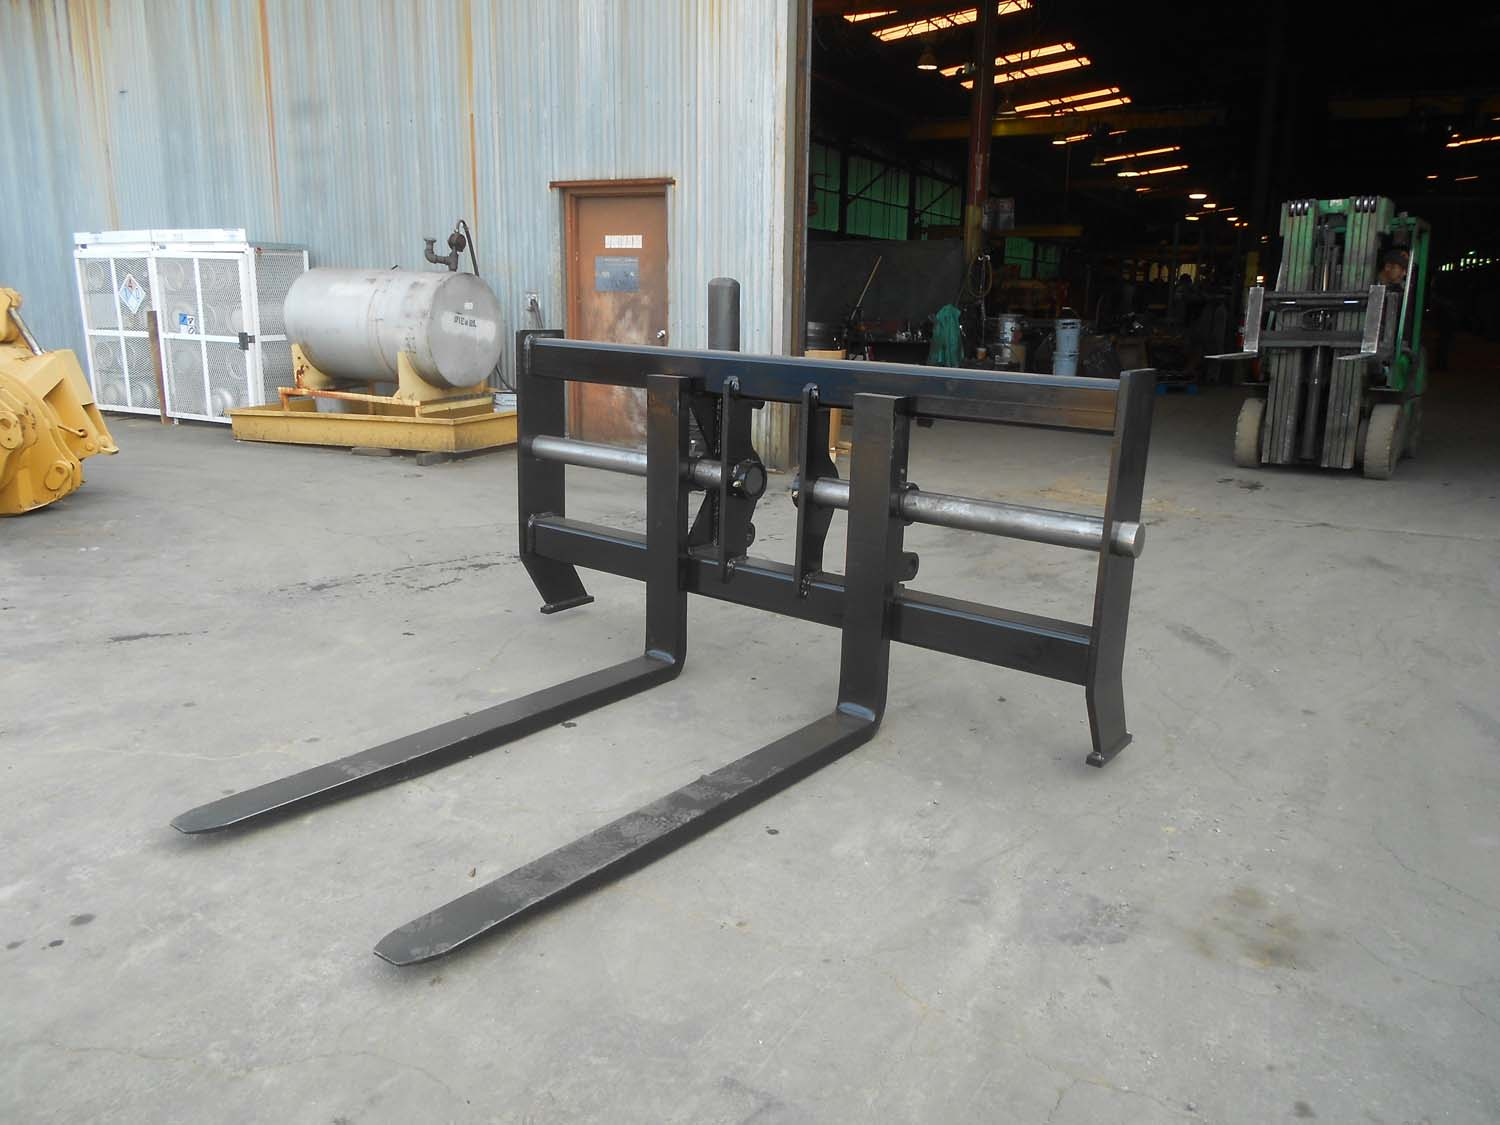 Skid Steer Fork Carriage Attachments